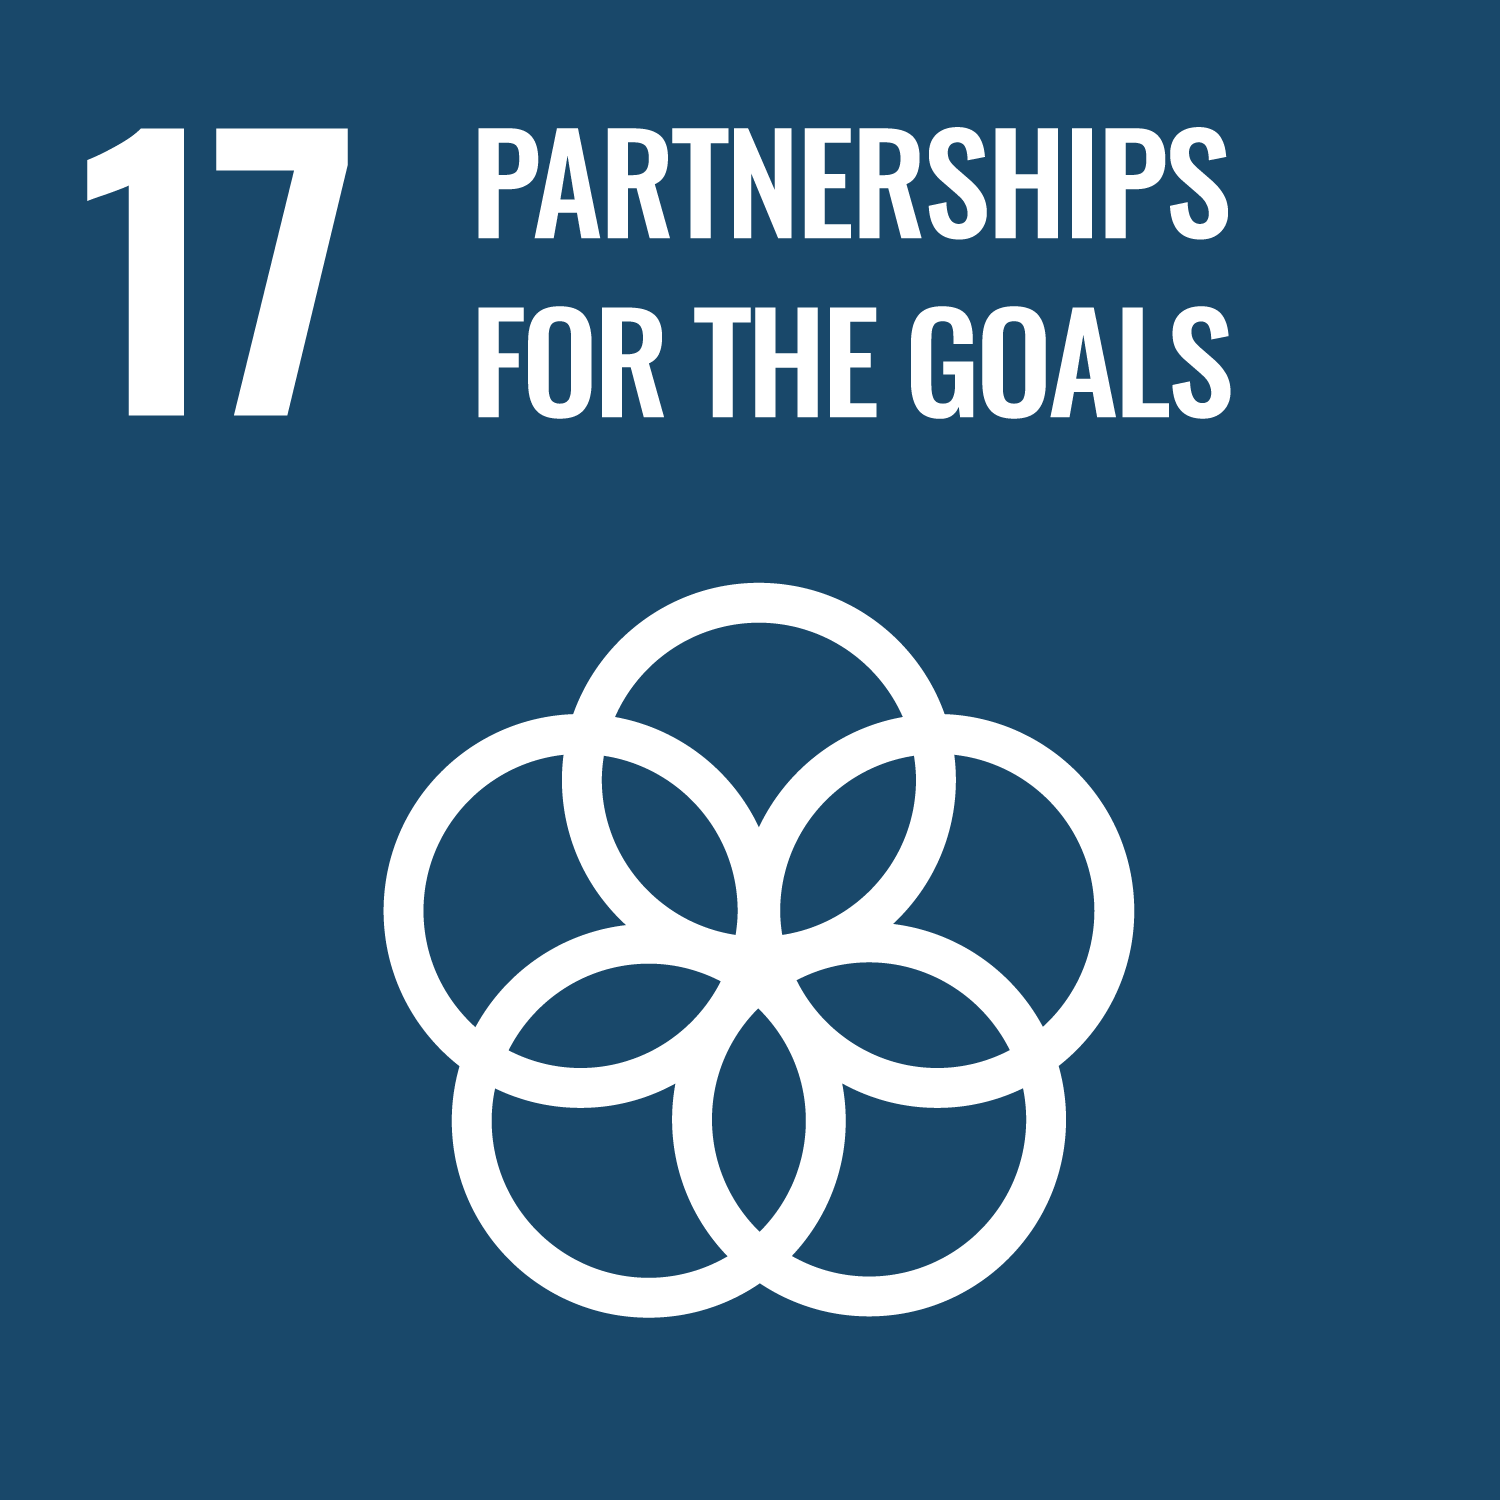 Goal 17: Partnerships for the goals